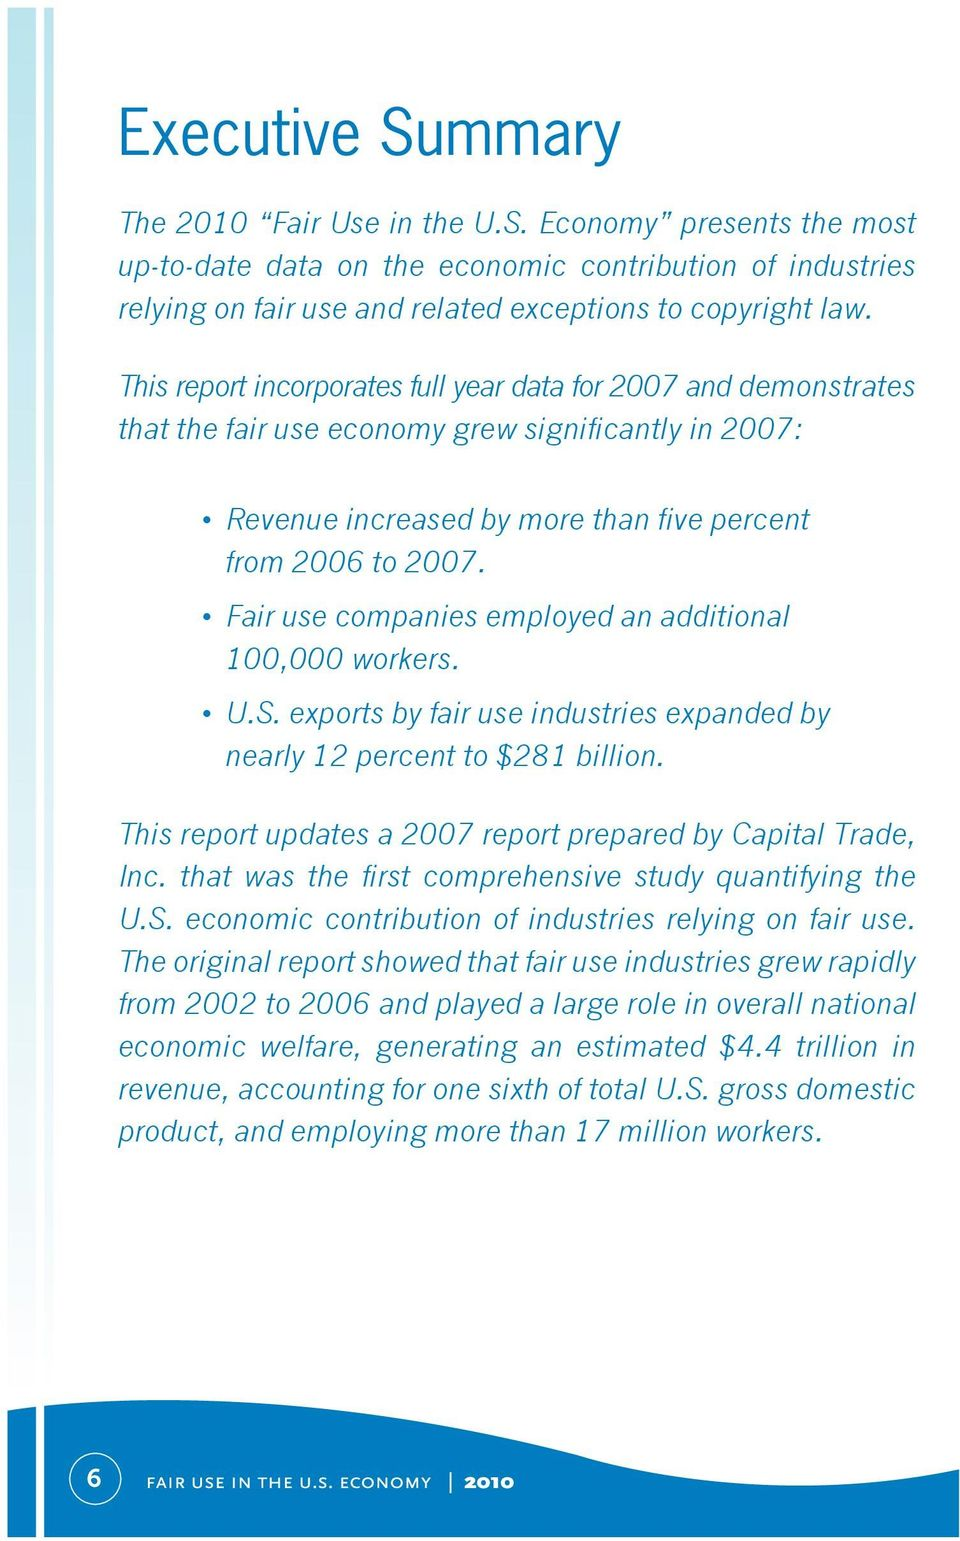 Fair use companies employed an additional 100,000 workers. U.S. exports by fair use industries expanded by nearly 12 percent to $281 billion.